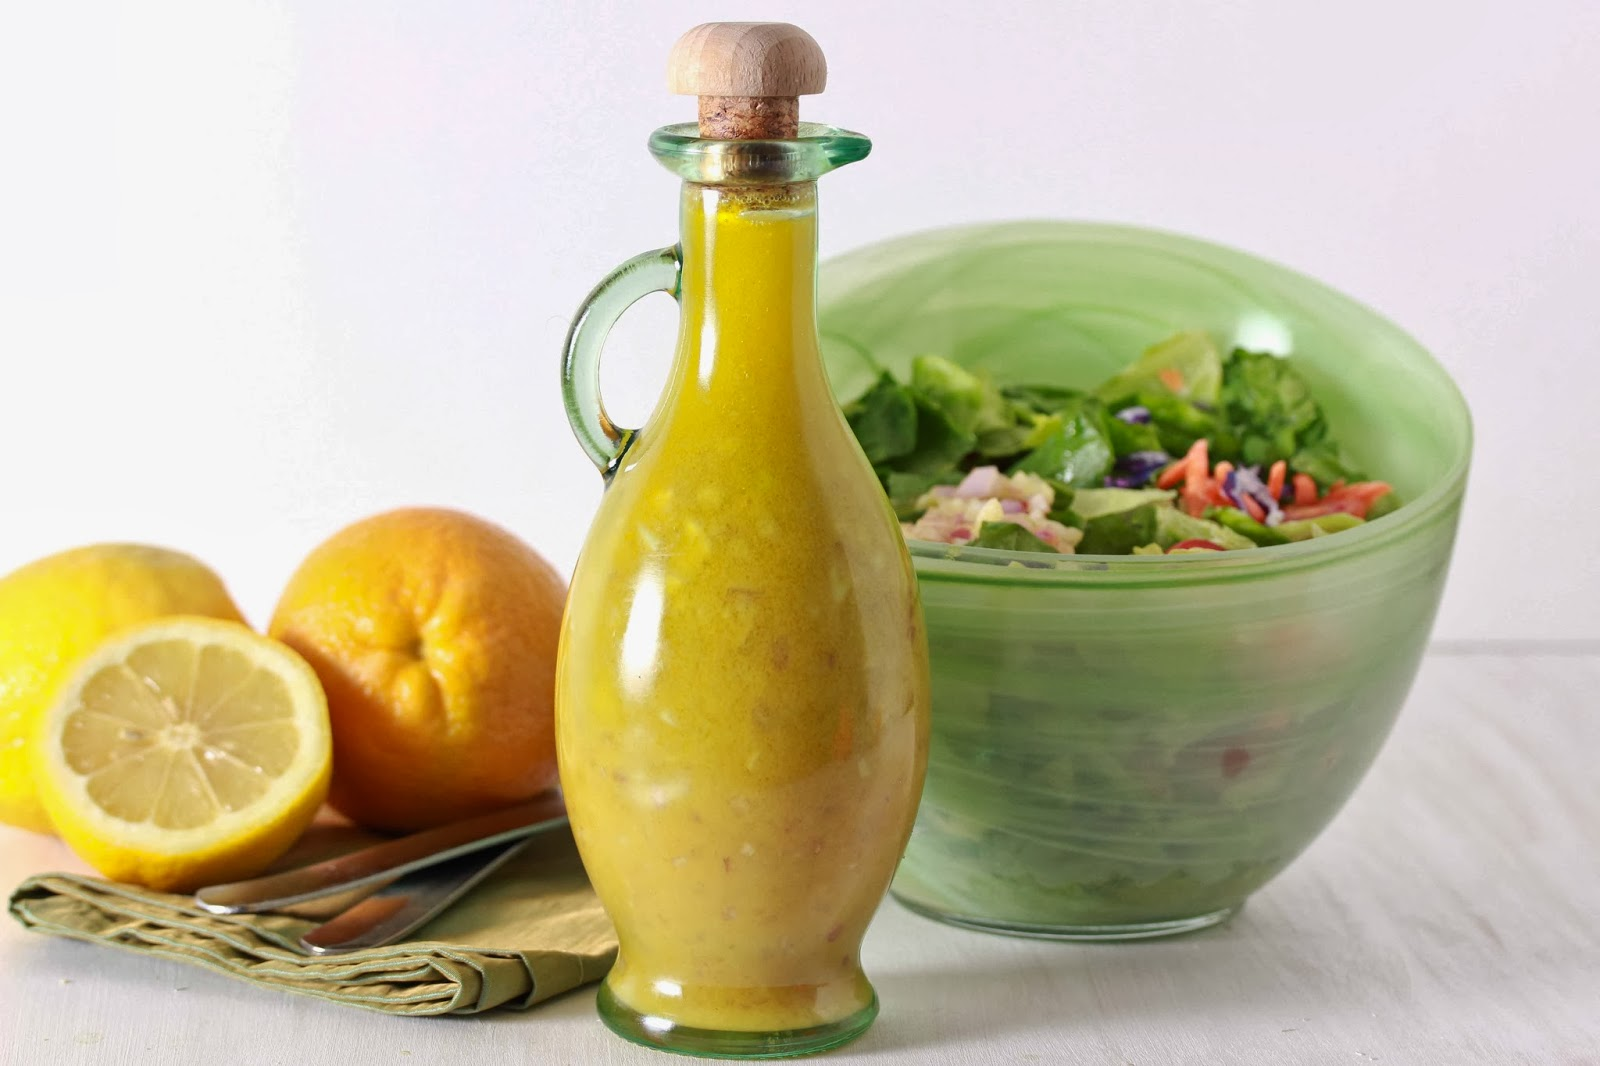 ... Decker: Looking for a new homemade salad dressing? Look no further